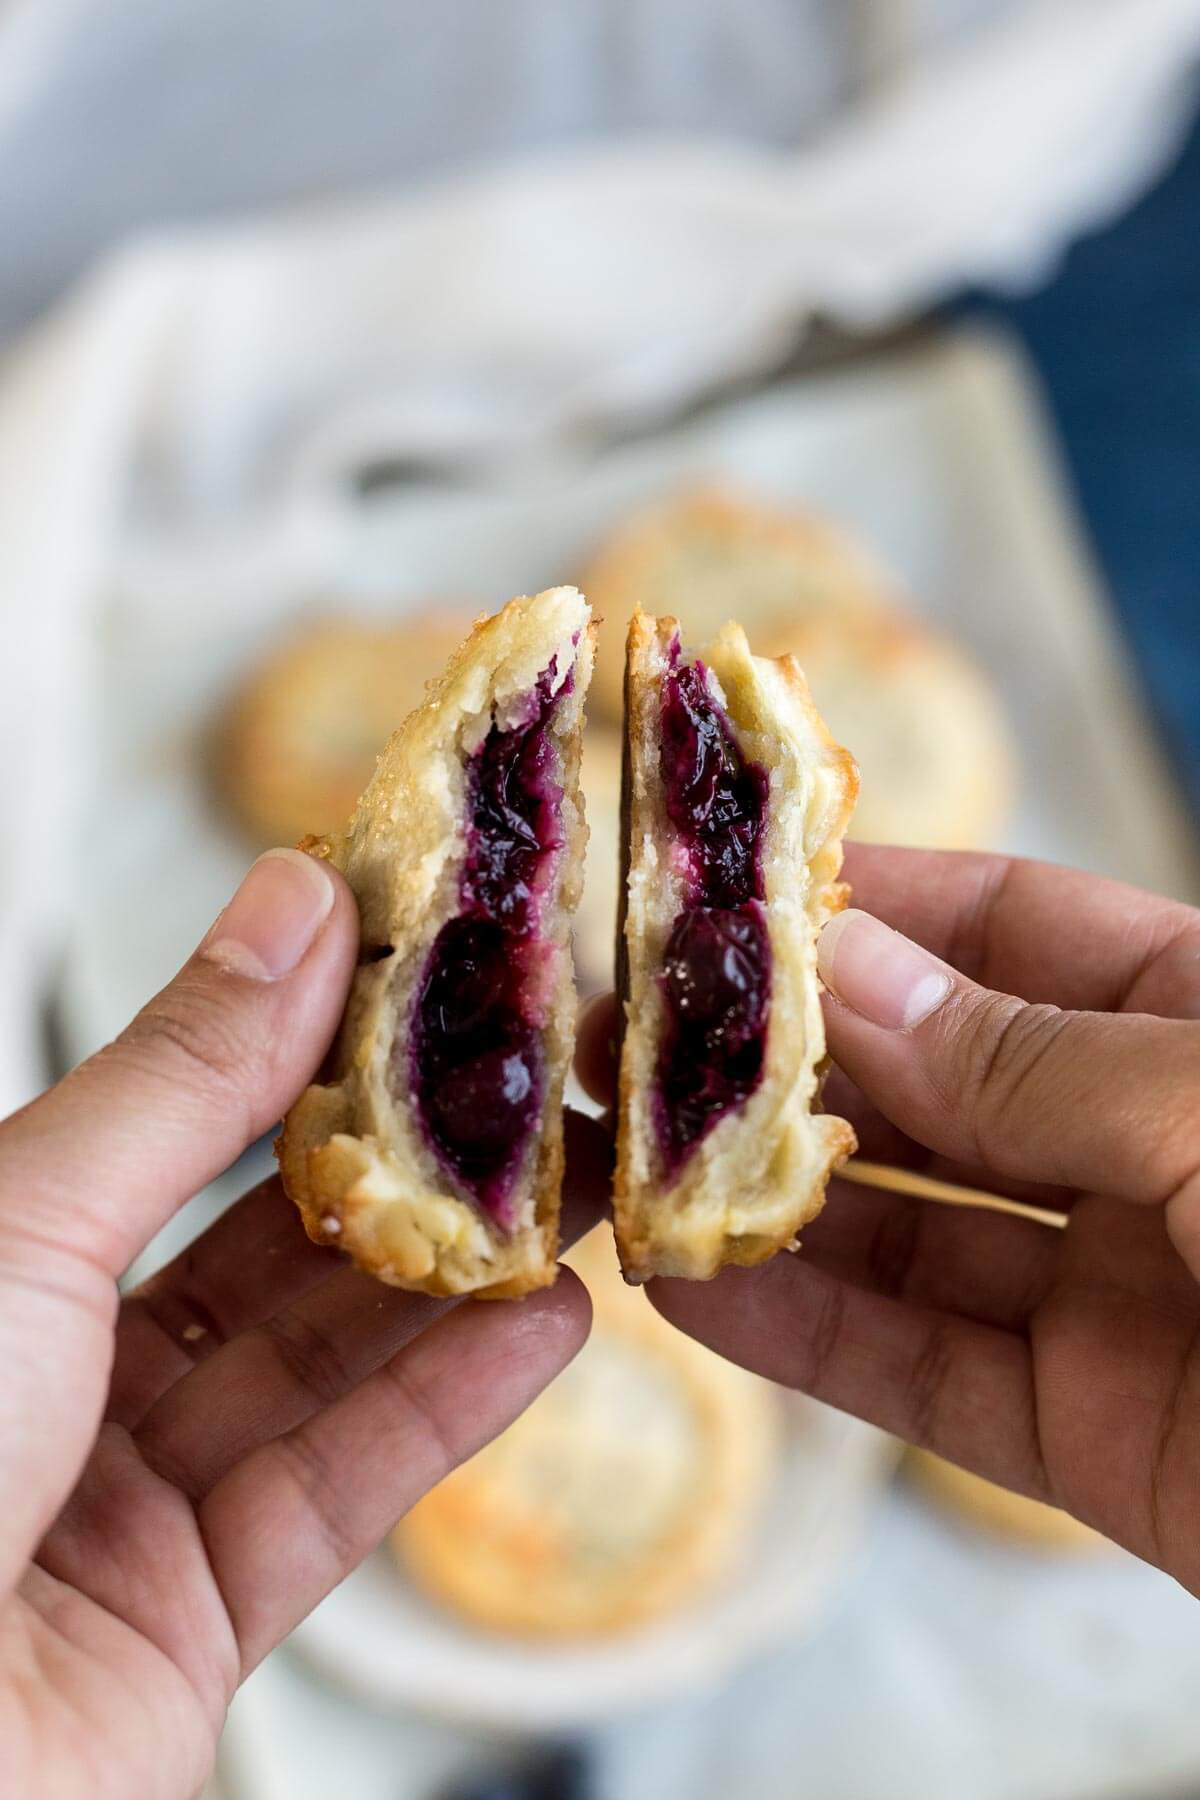 The inside of a baked Blueberry Lemon Hand Pie